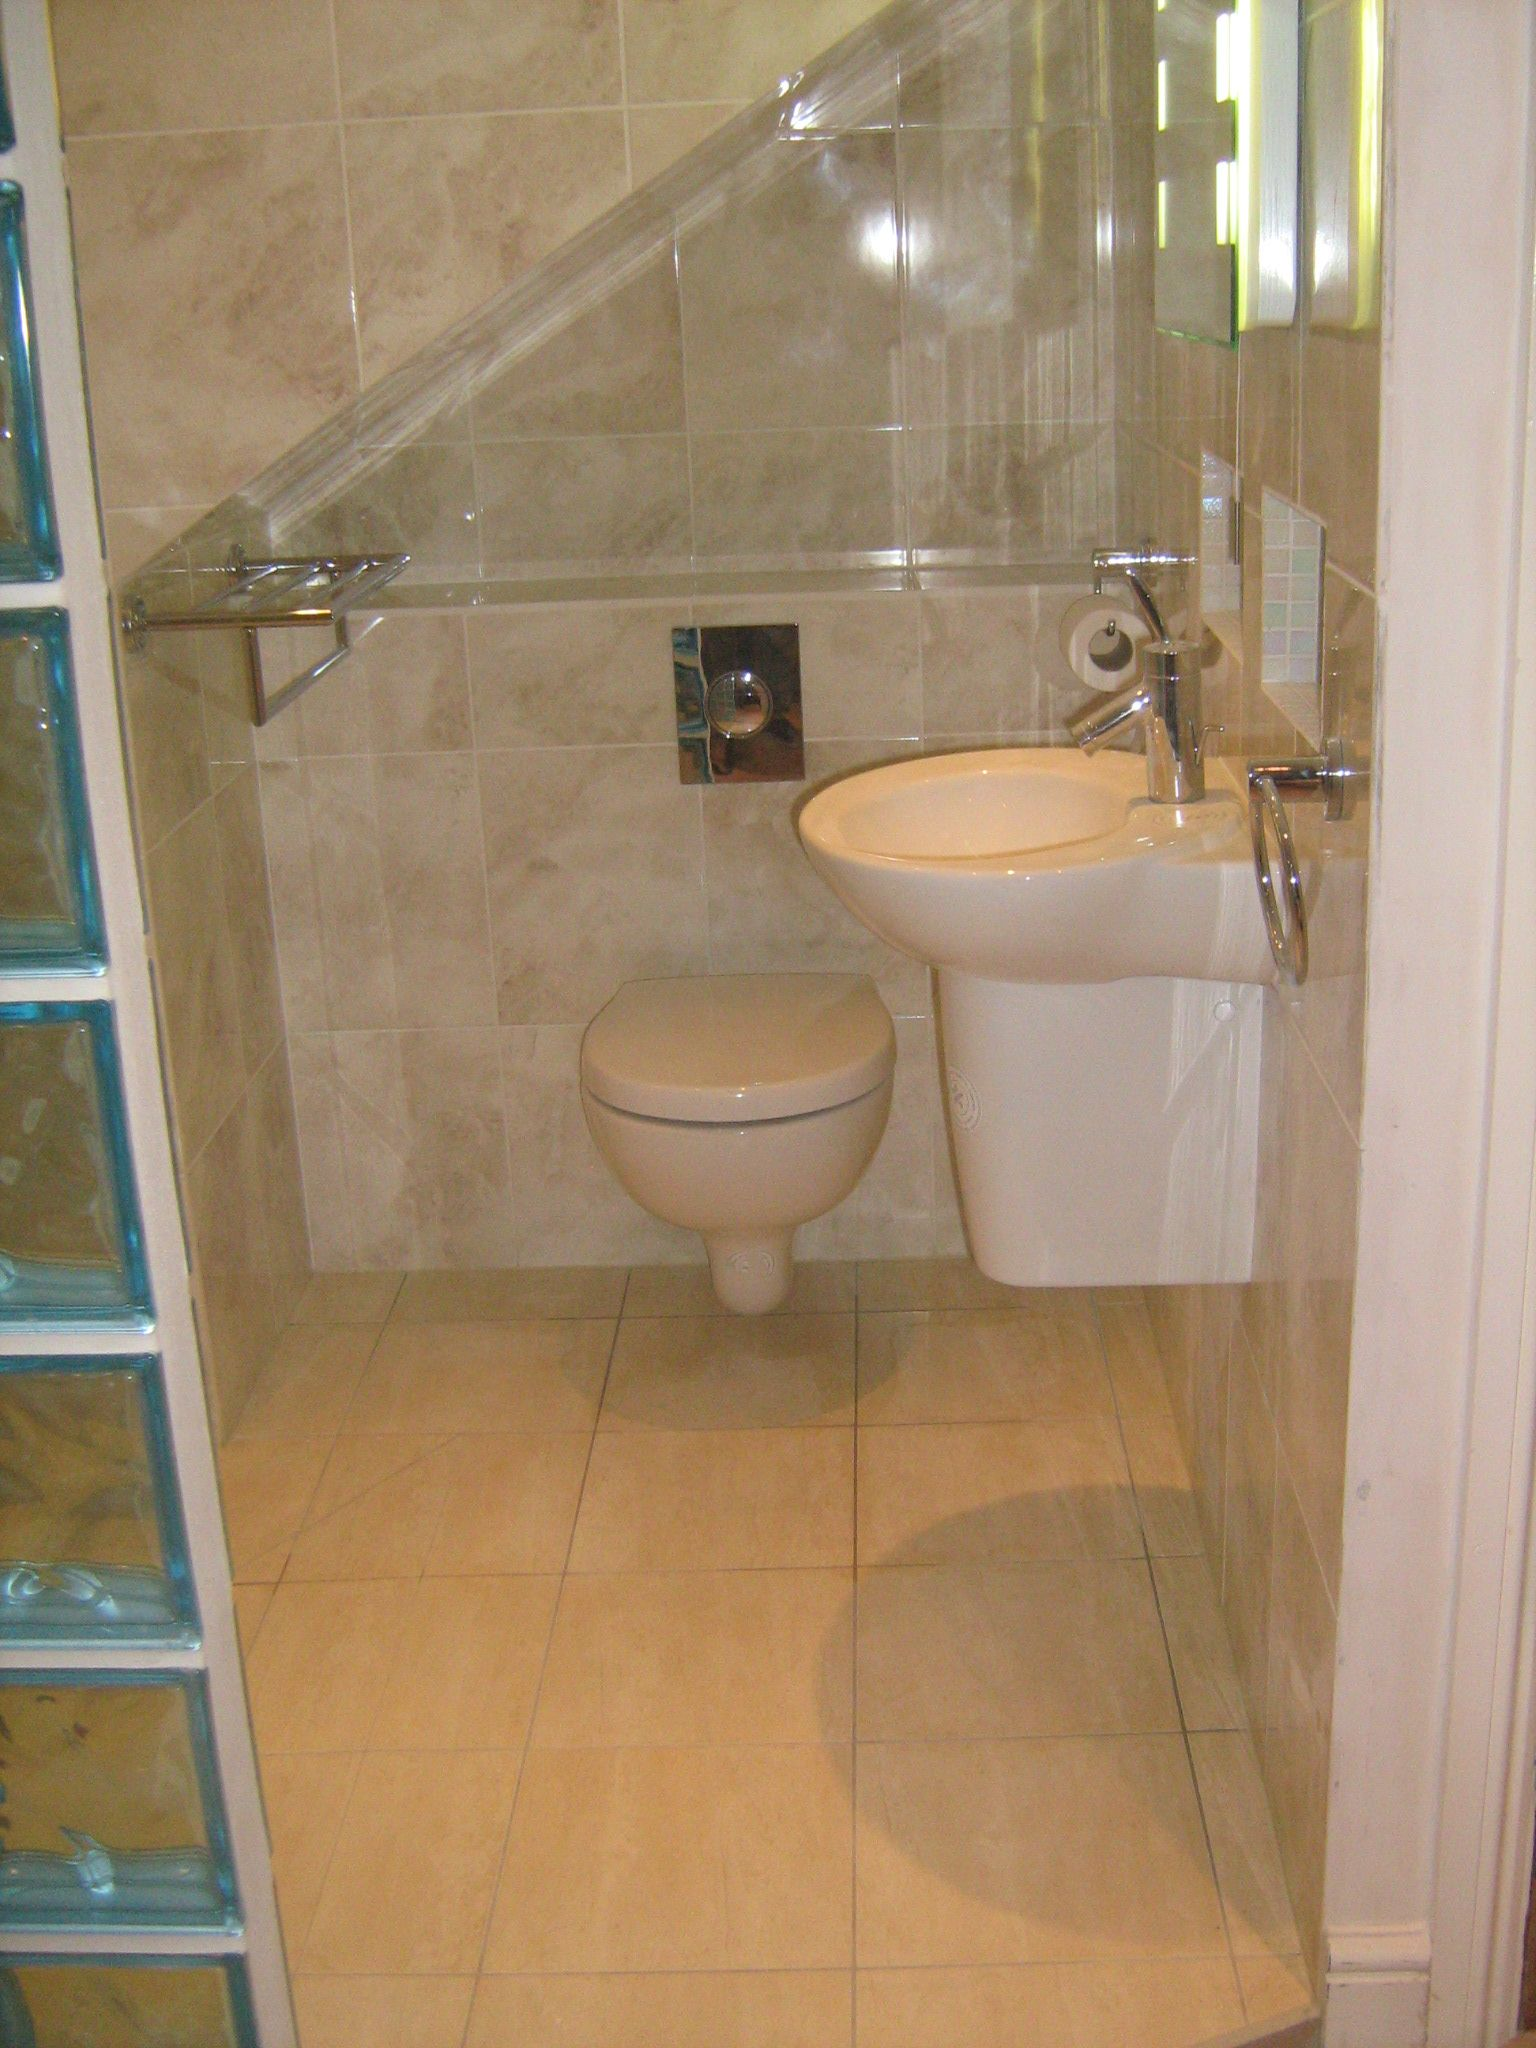 Shower, toilet and sink separated by glass block divider. | Bathroom ...